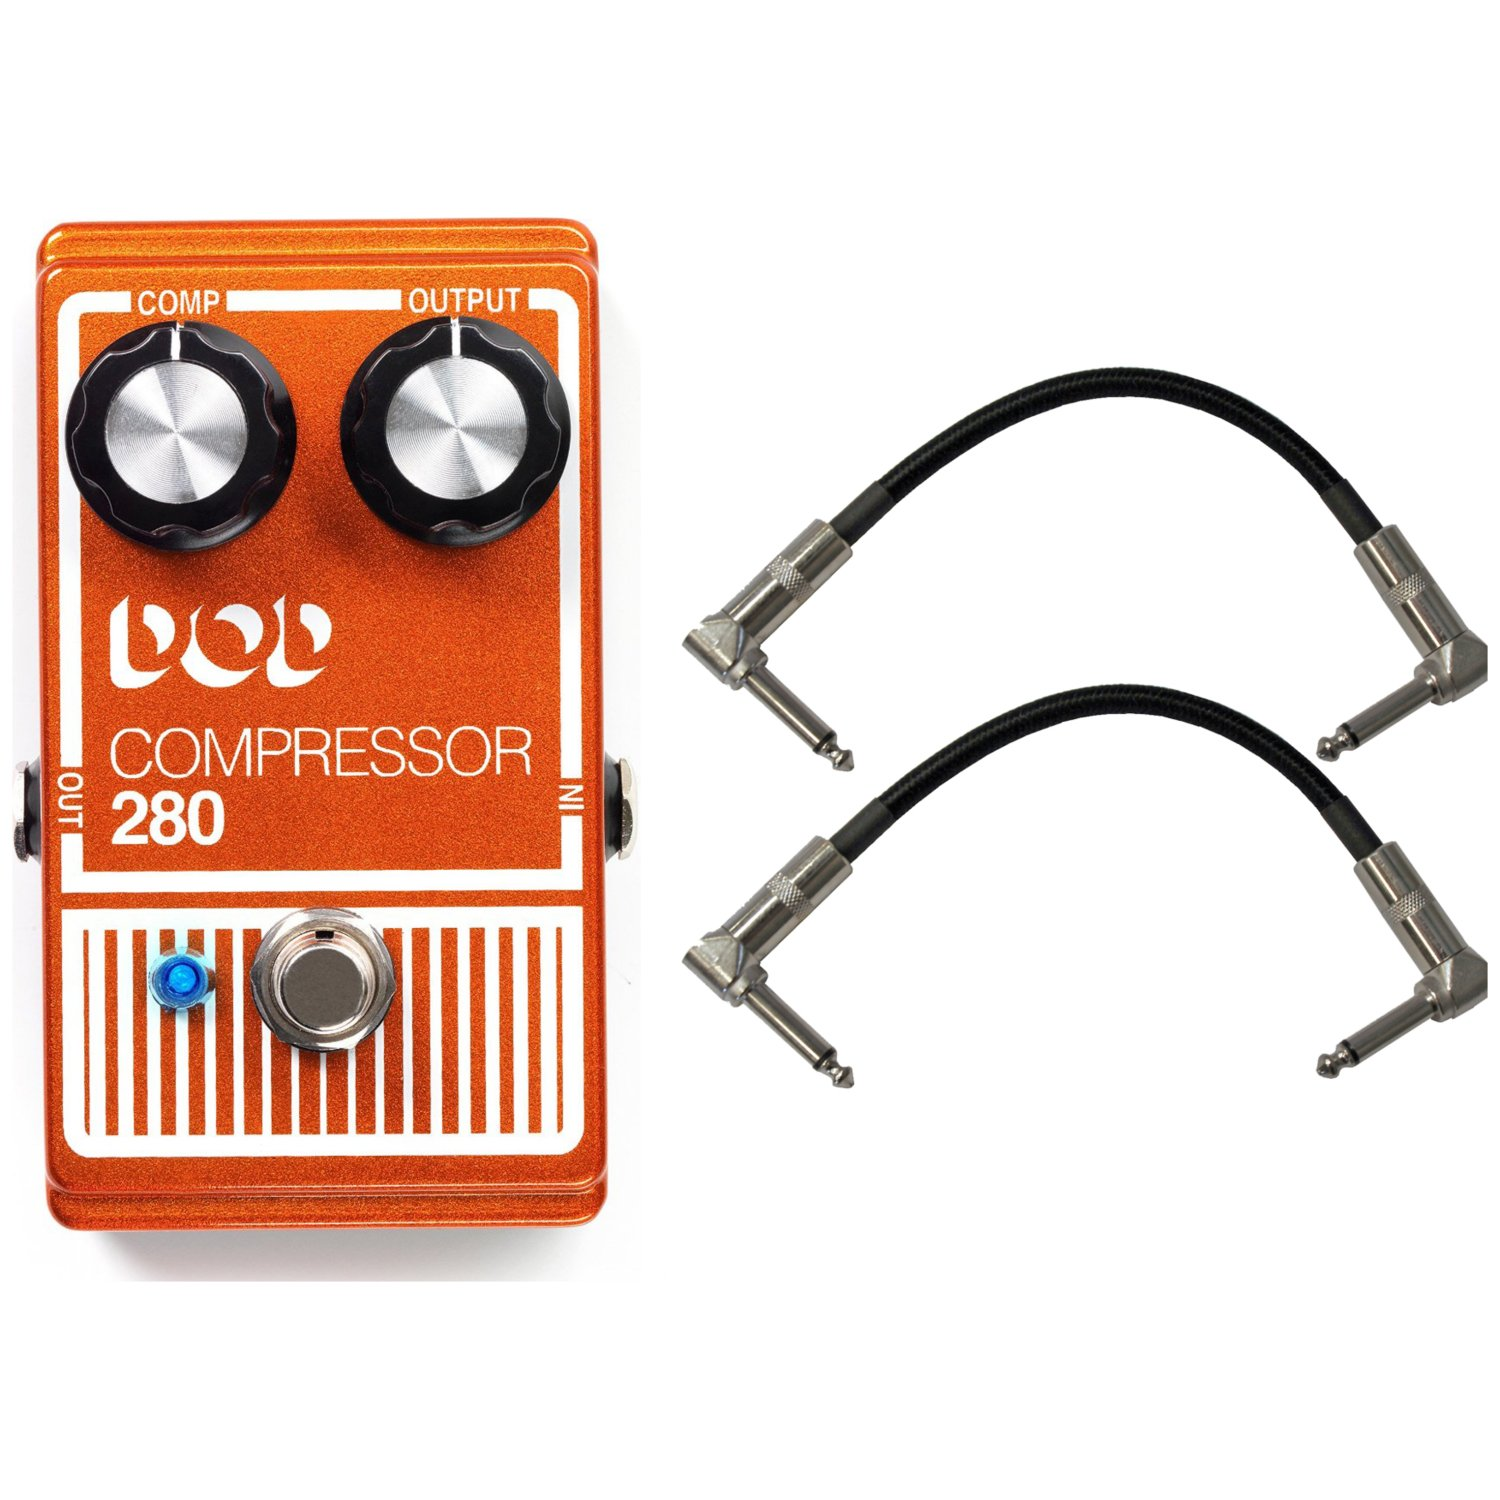 DOD 280 Compressor Pedal w/ 2 Patch Cables